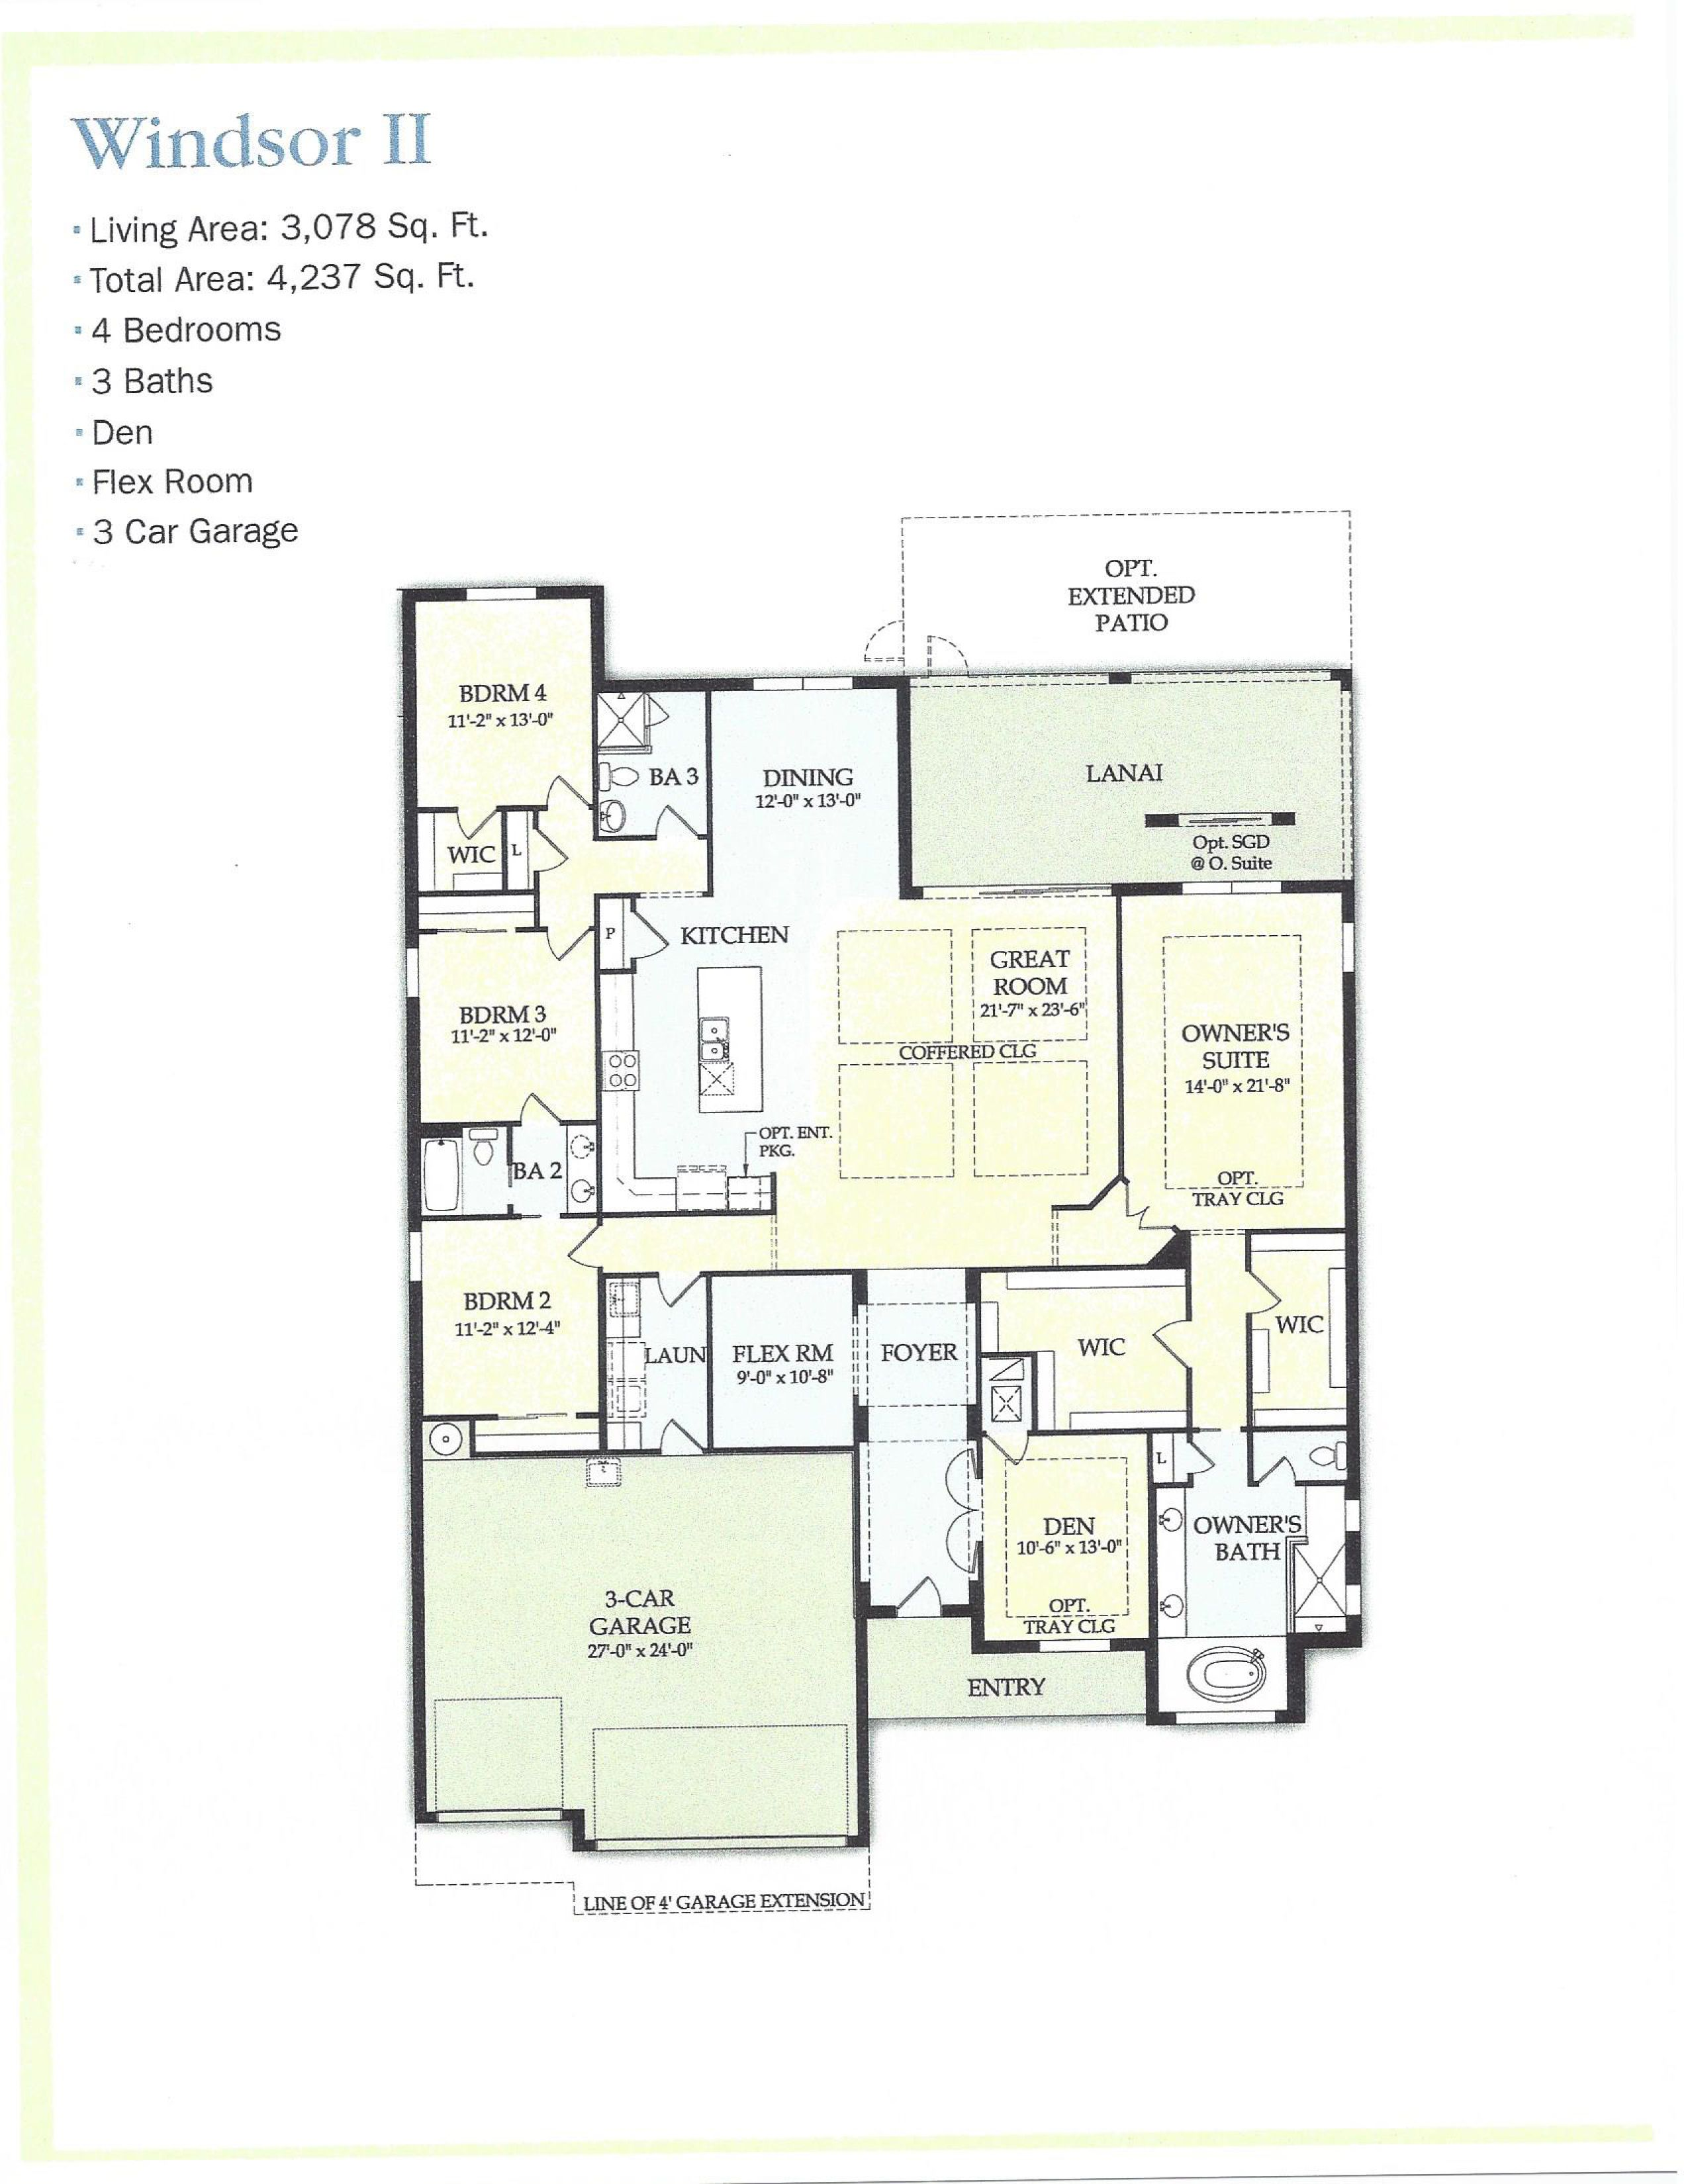 Windsor Ii Floor Plan Camden Lakes Naples Fl Naples Real Estate Flex Room Naples Fl